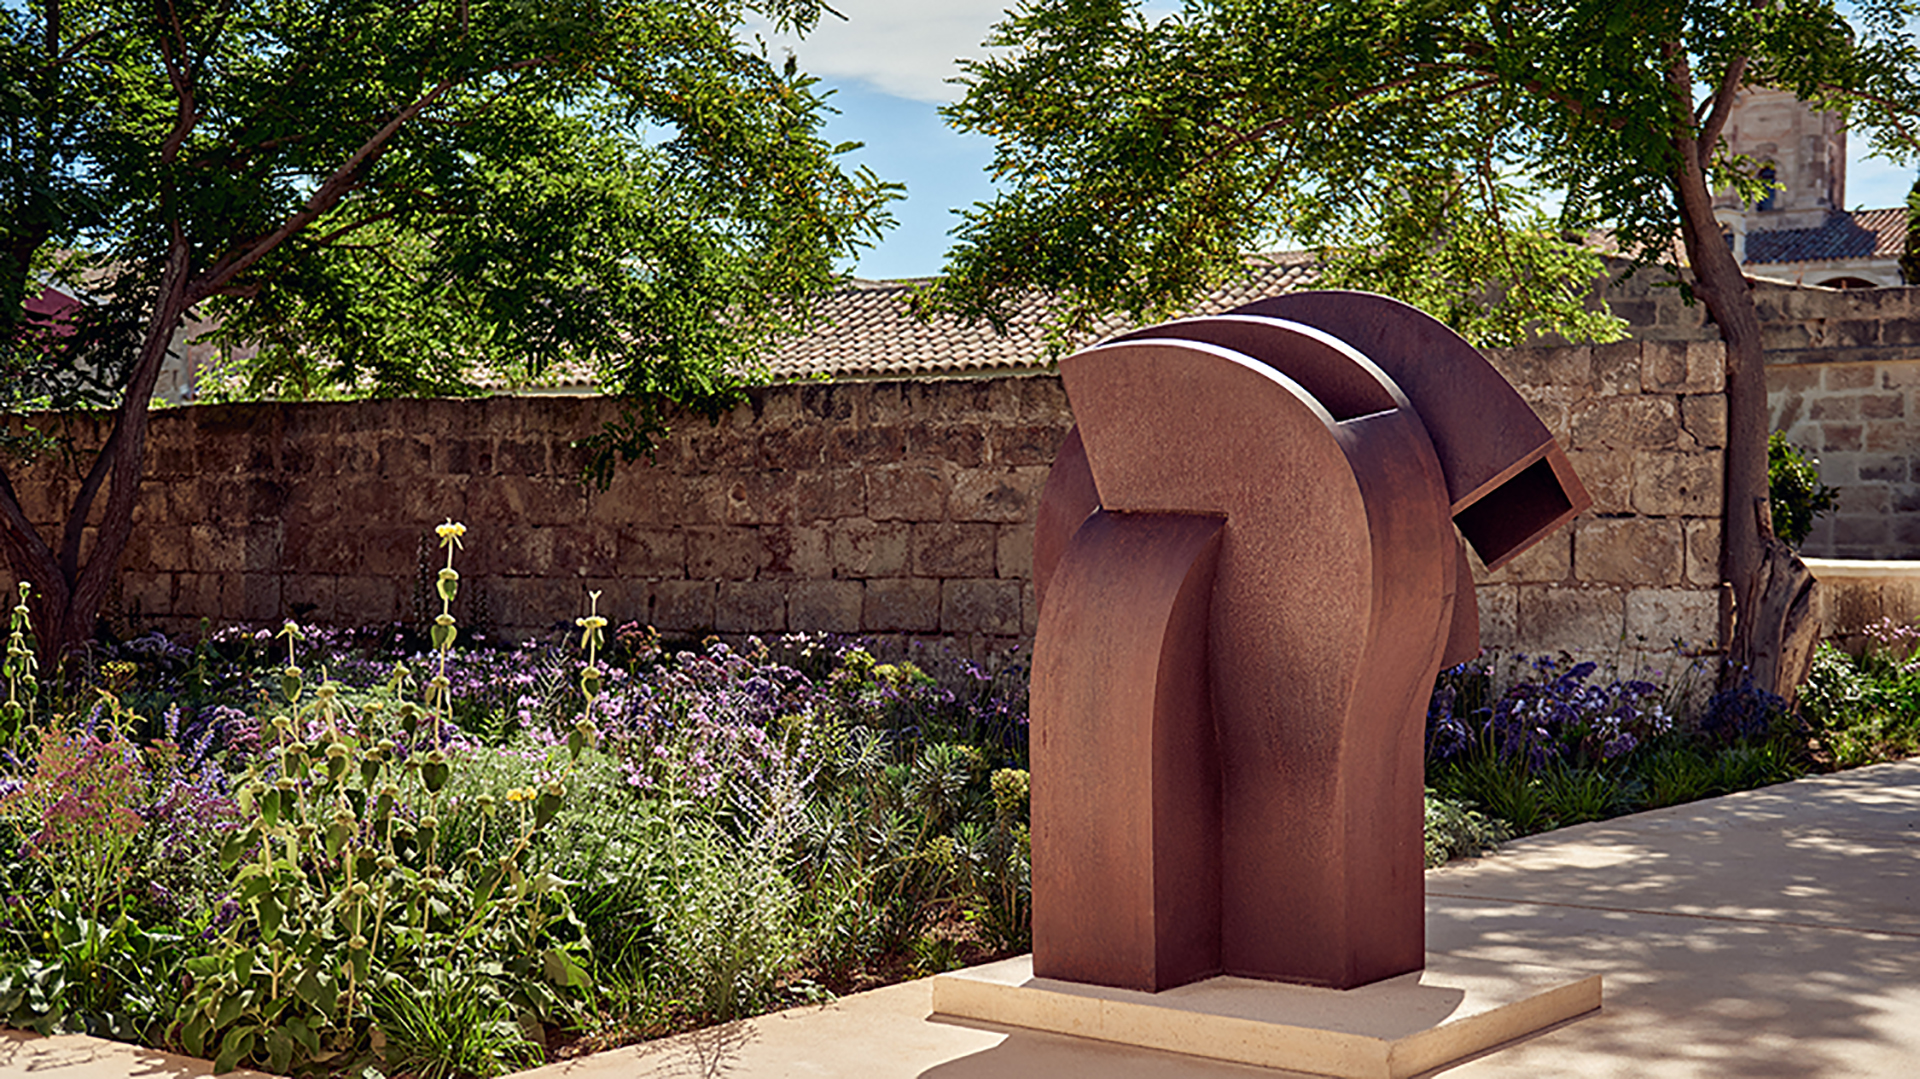 menorca-has-suddenly-become-a-summer-hotbed-for-international-art